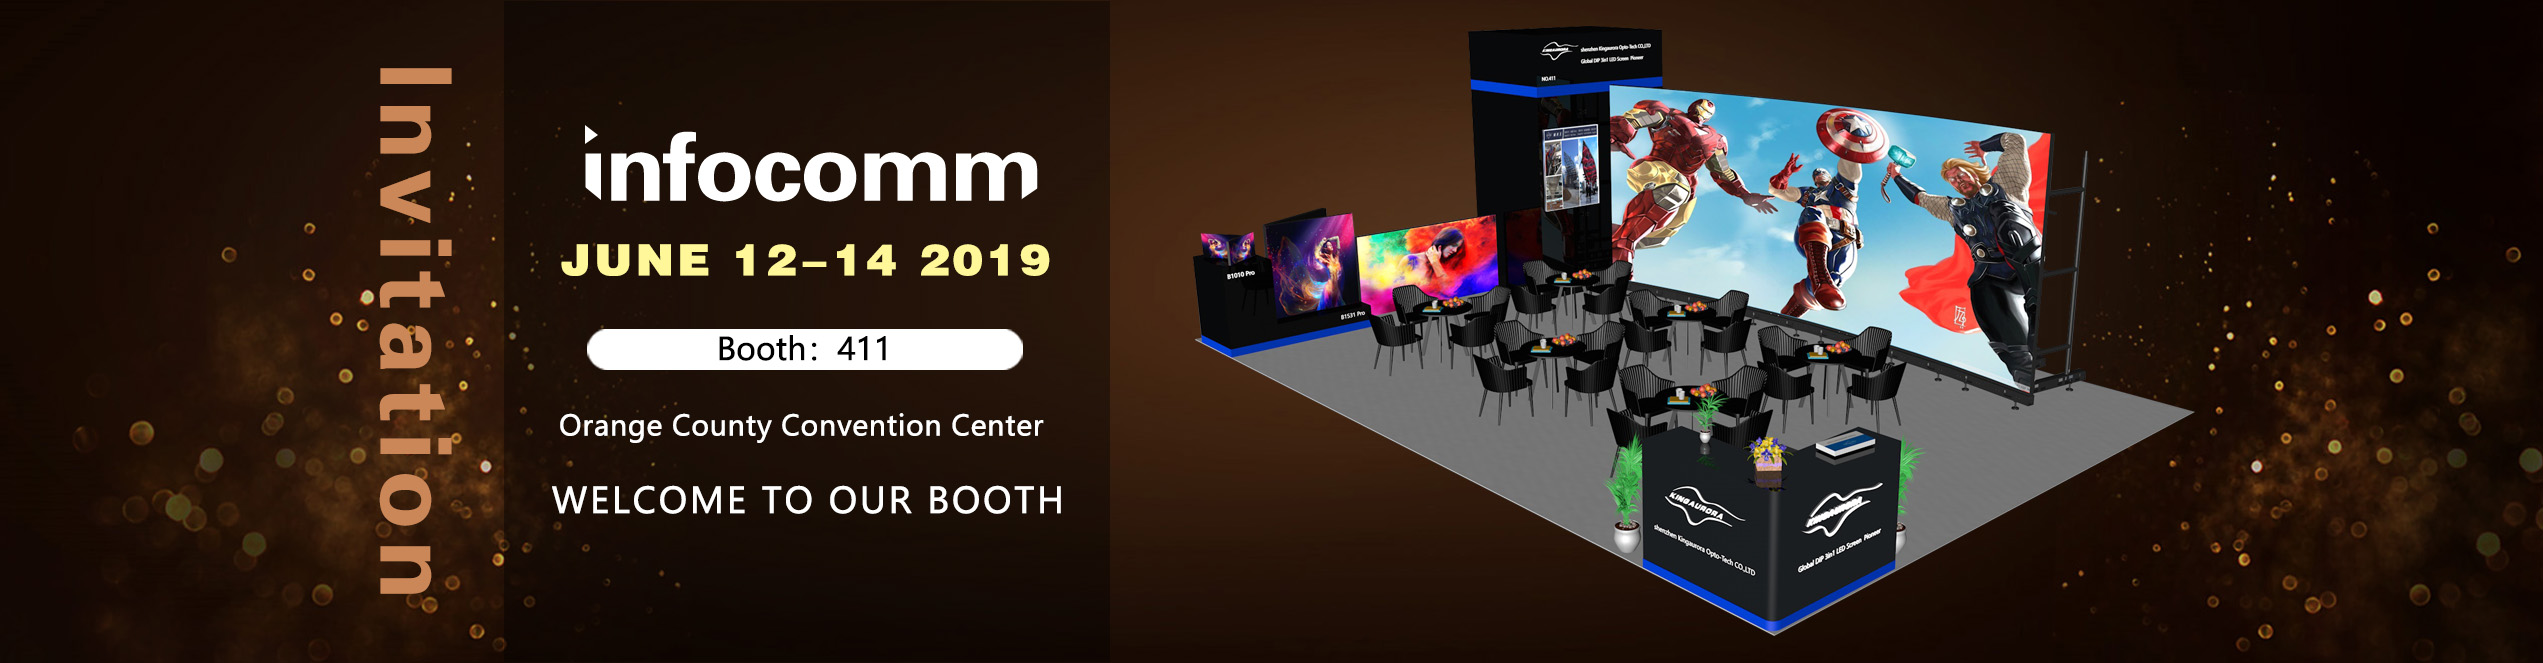 Kingaurora invites you to visit Infocomm